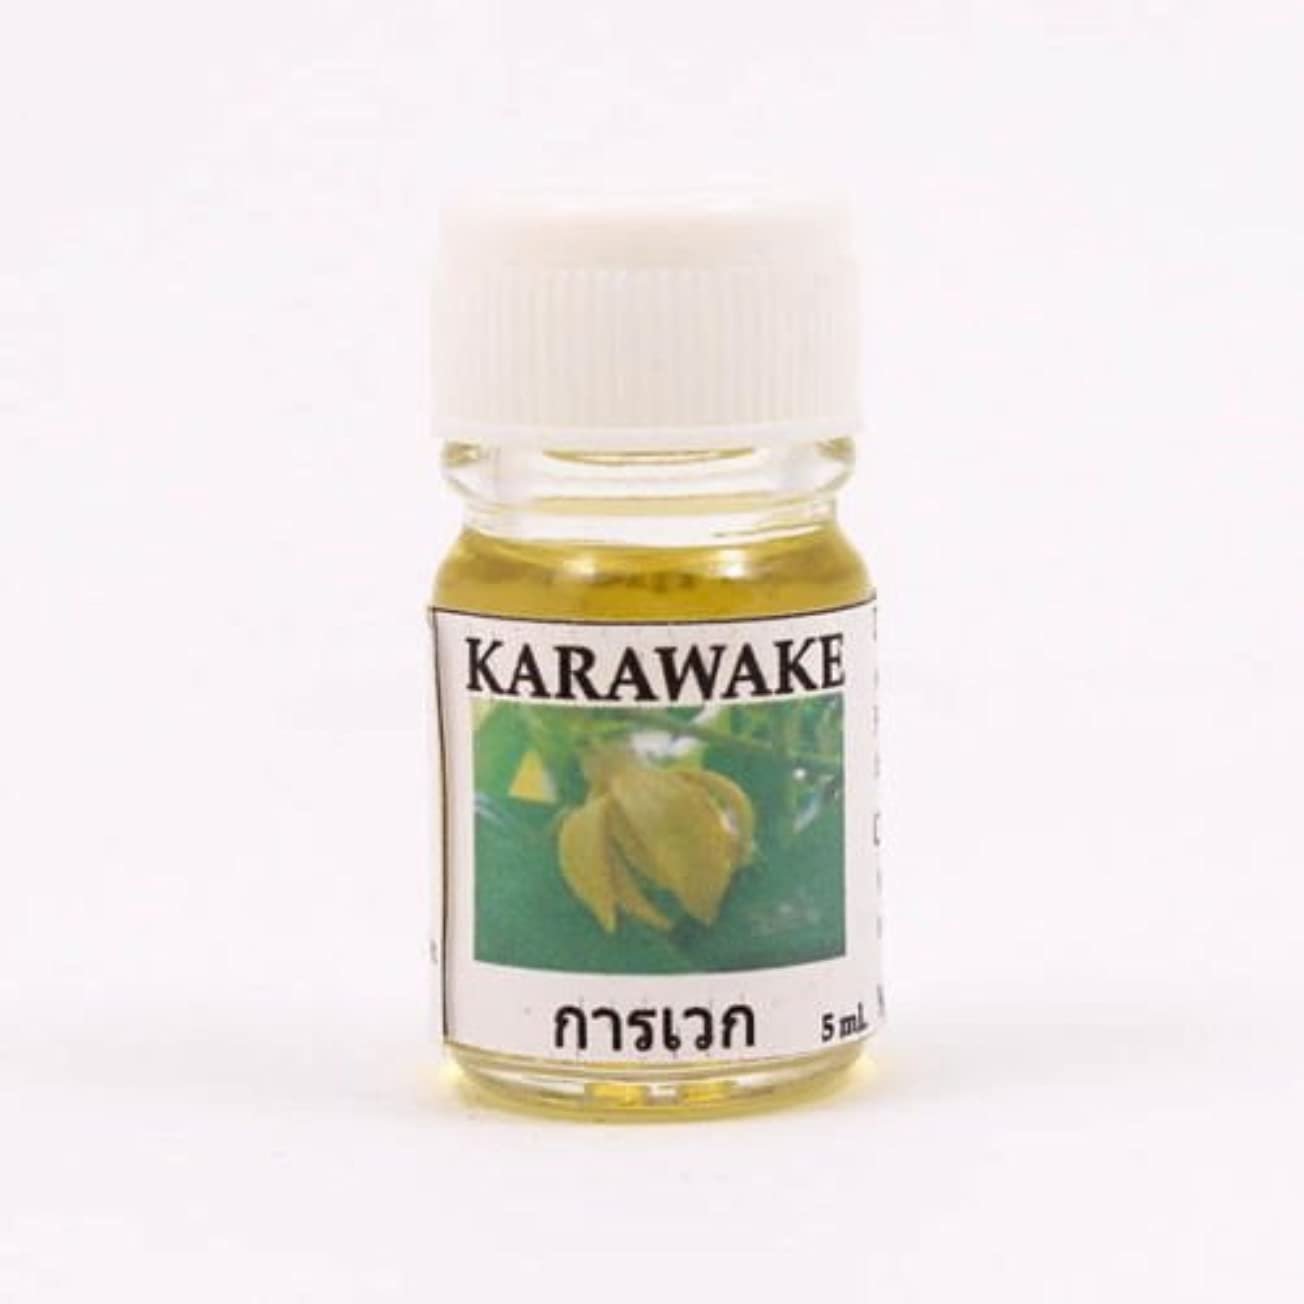 浸したブリーフケース報復する6X Karawake Aroma Fragrance Essential Oil 5ML. cc Diffuser Burner Therapy